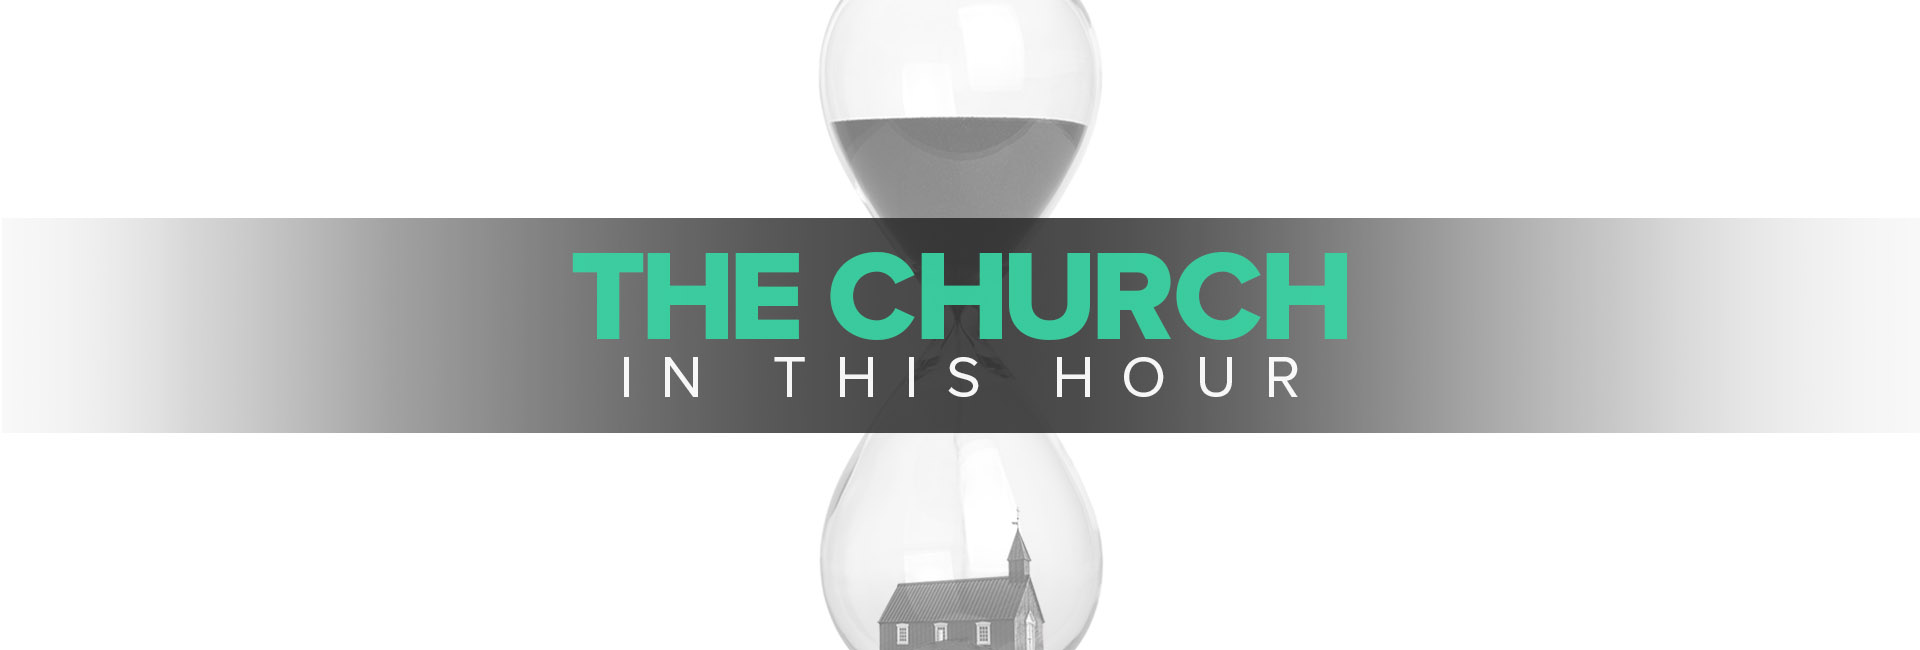 The Church in this Hour